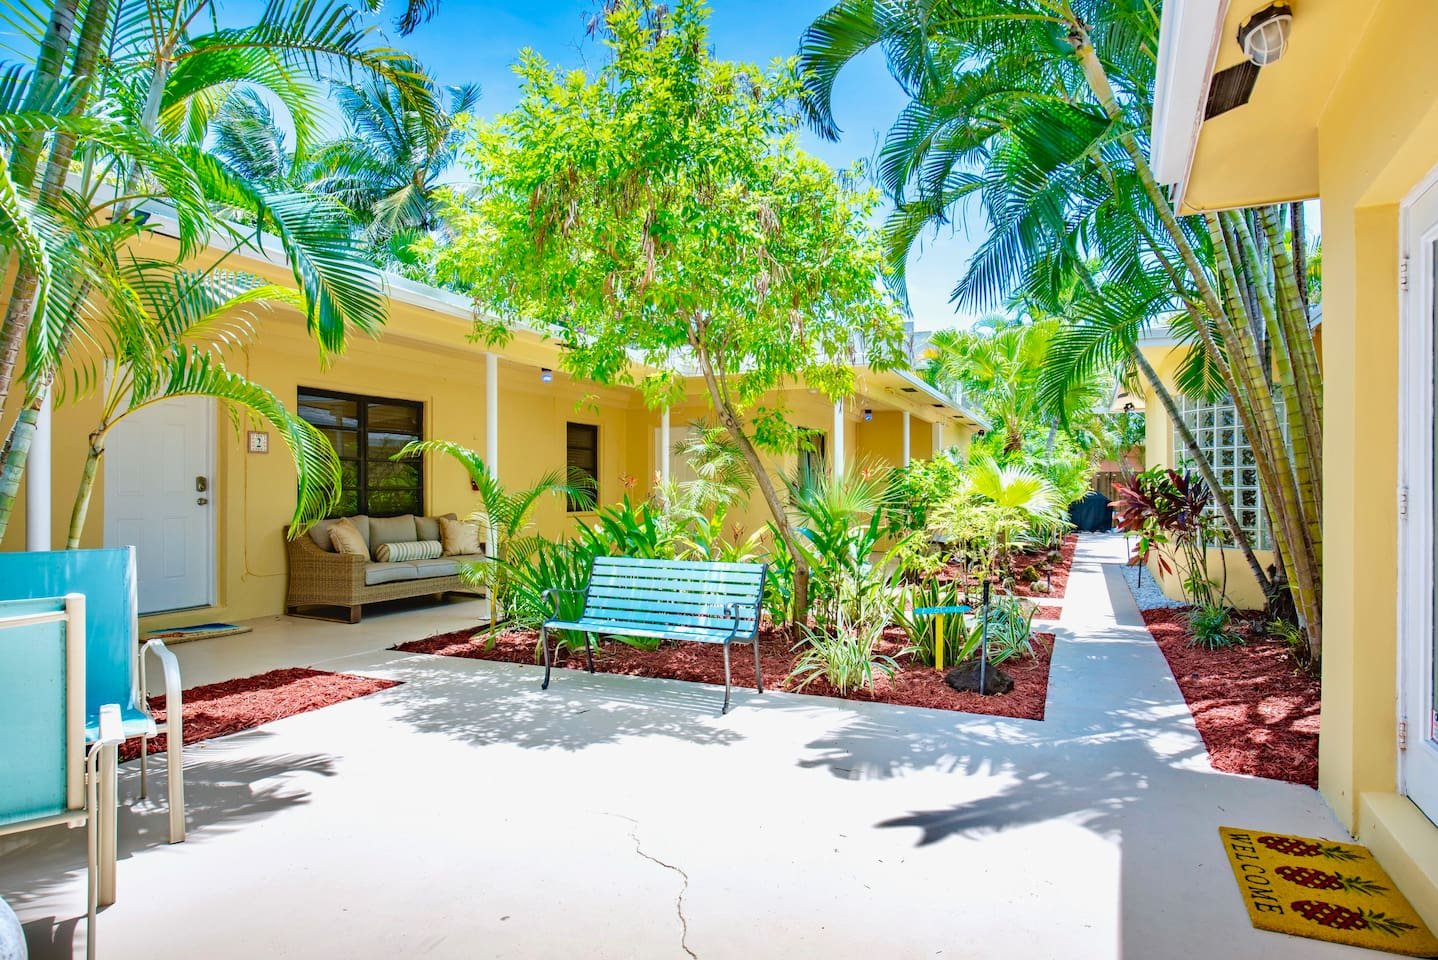 Courtyard and Gardens - shared access with other guests on property.